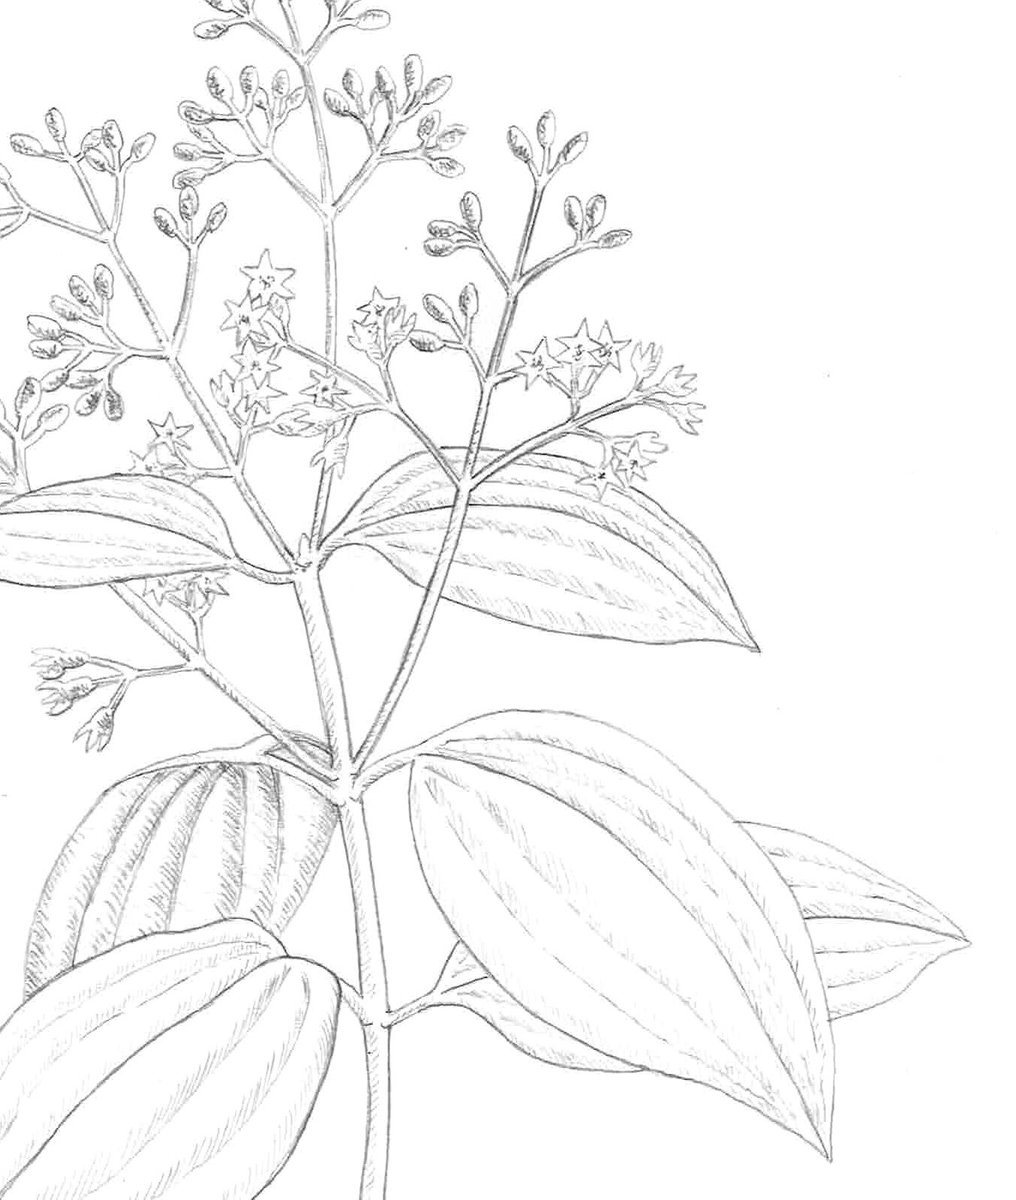 Day 173. Initial sketch of Cinnamomum verum (cinnamon), a new commission I'm working on.  #art #botanical #botanicalillustrator #botanicaldrawing #sketch #realisticdrawing #botanicalartist #cinnamomum #cinnamon #wip #sketch365 #dailydrawing #draweveryday #jennyhaslimeierpic.twitter.com/KwUgih14My